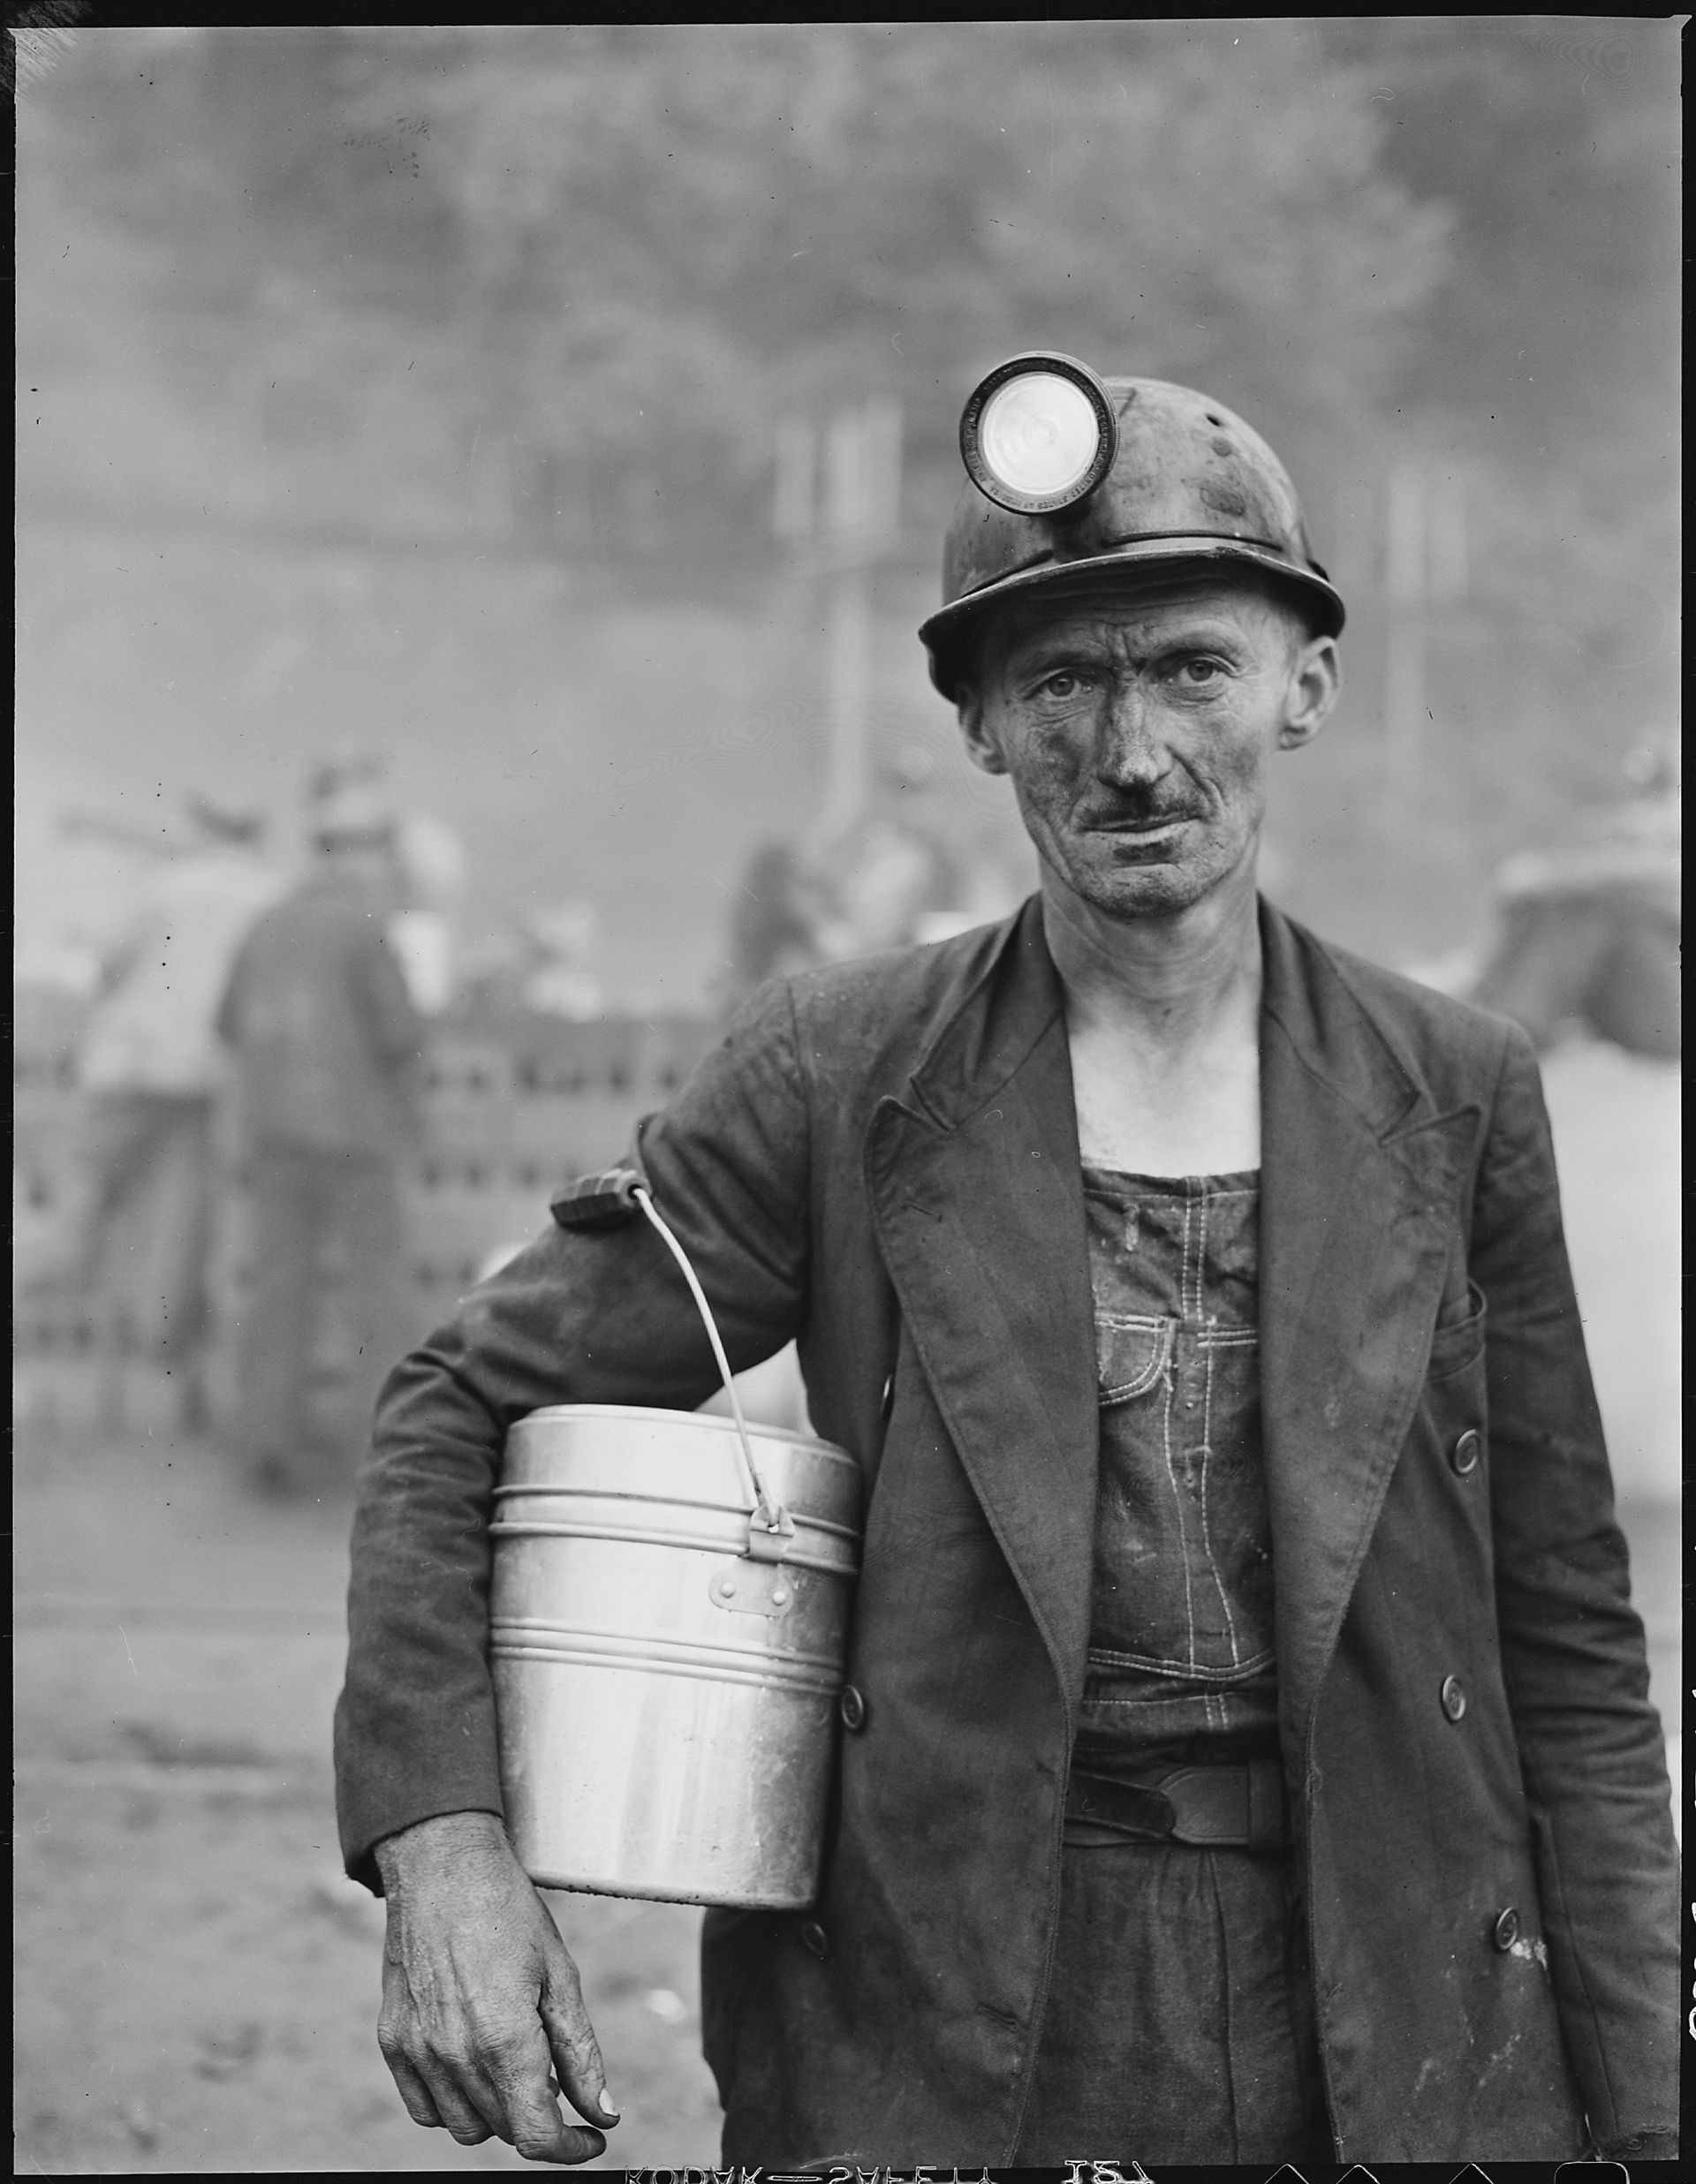 A coal miner in Floyd County, Kentucky, 1947.